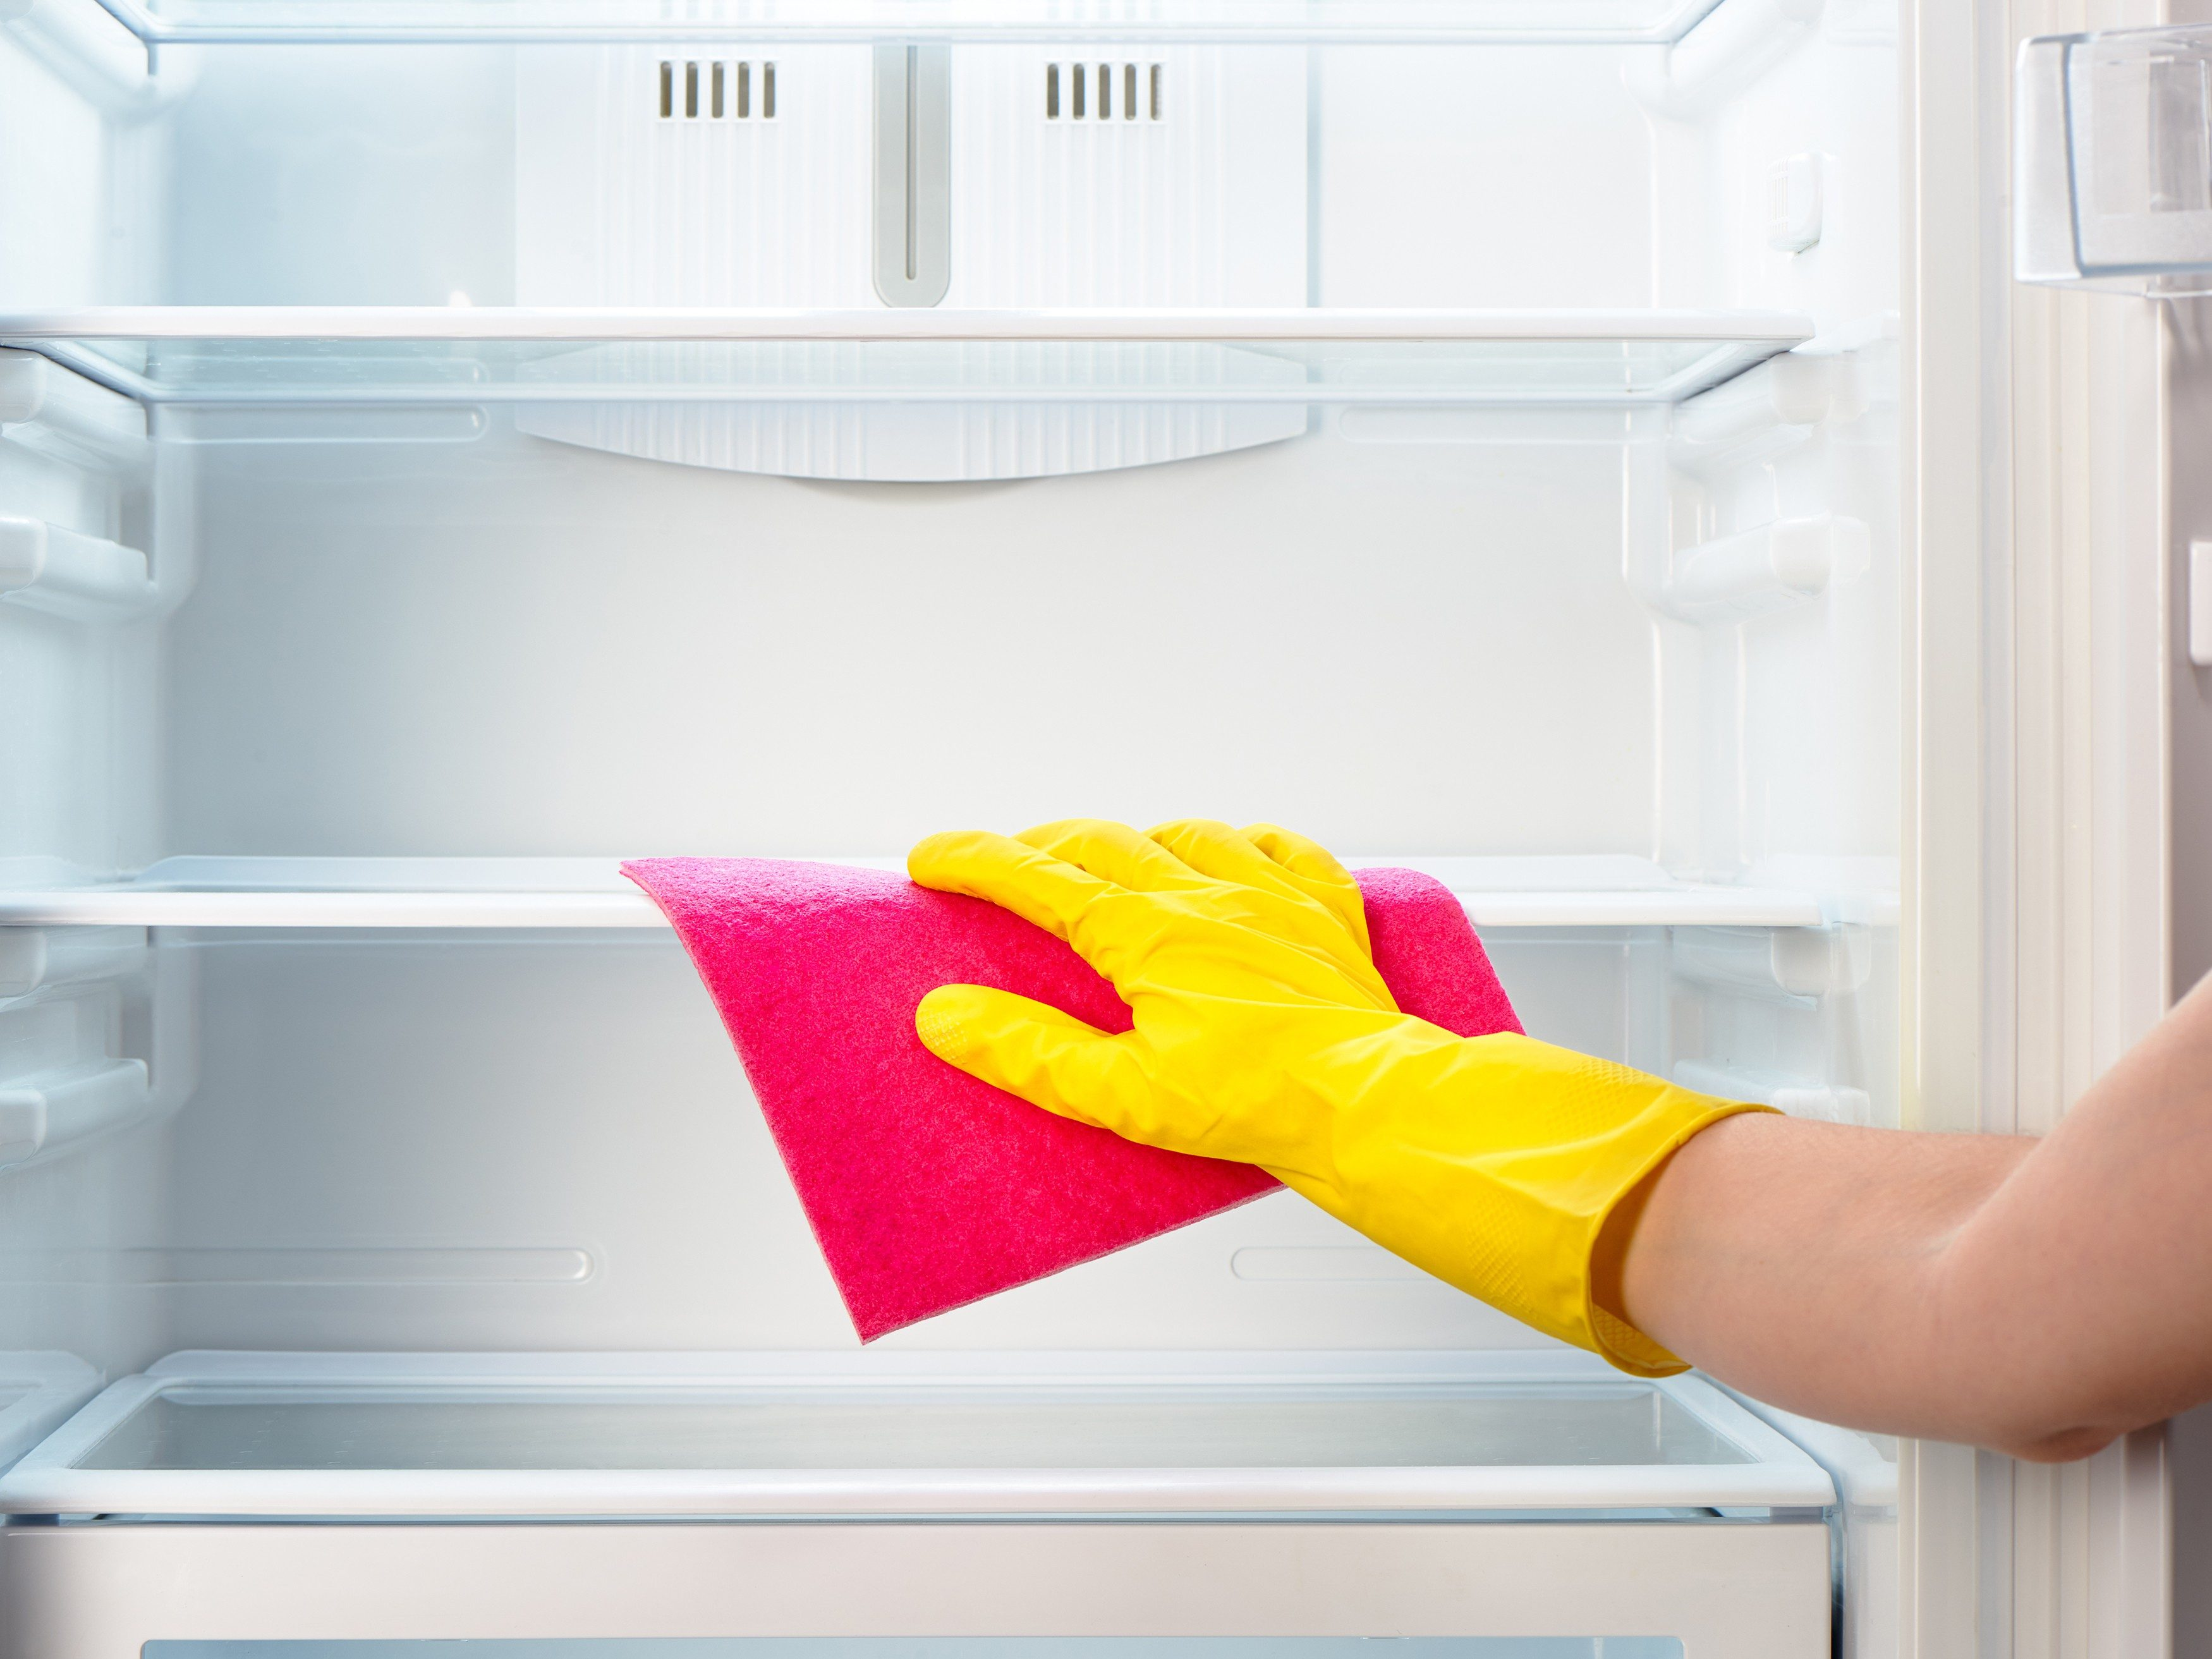 2. Use WD-40 to Clean Your Fridge